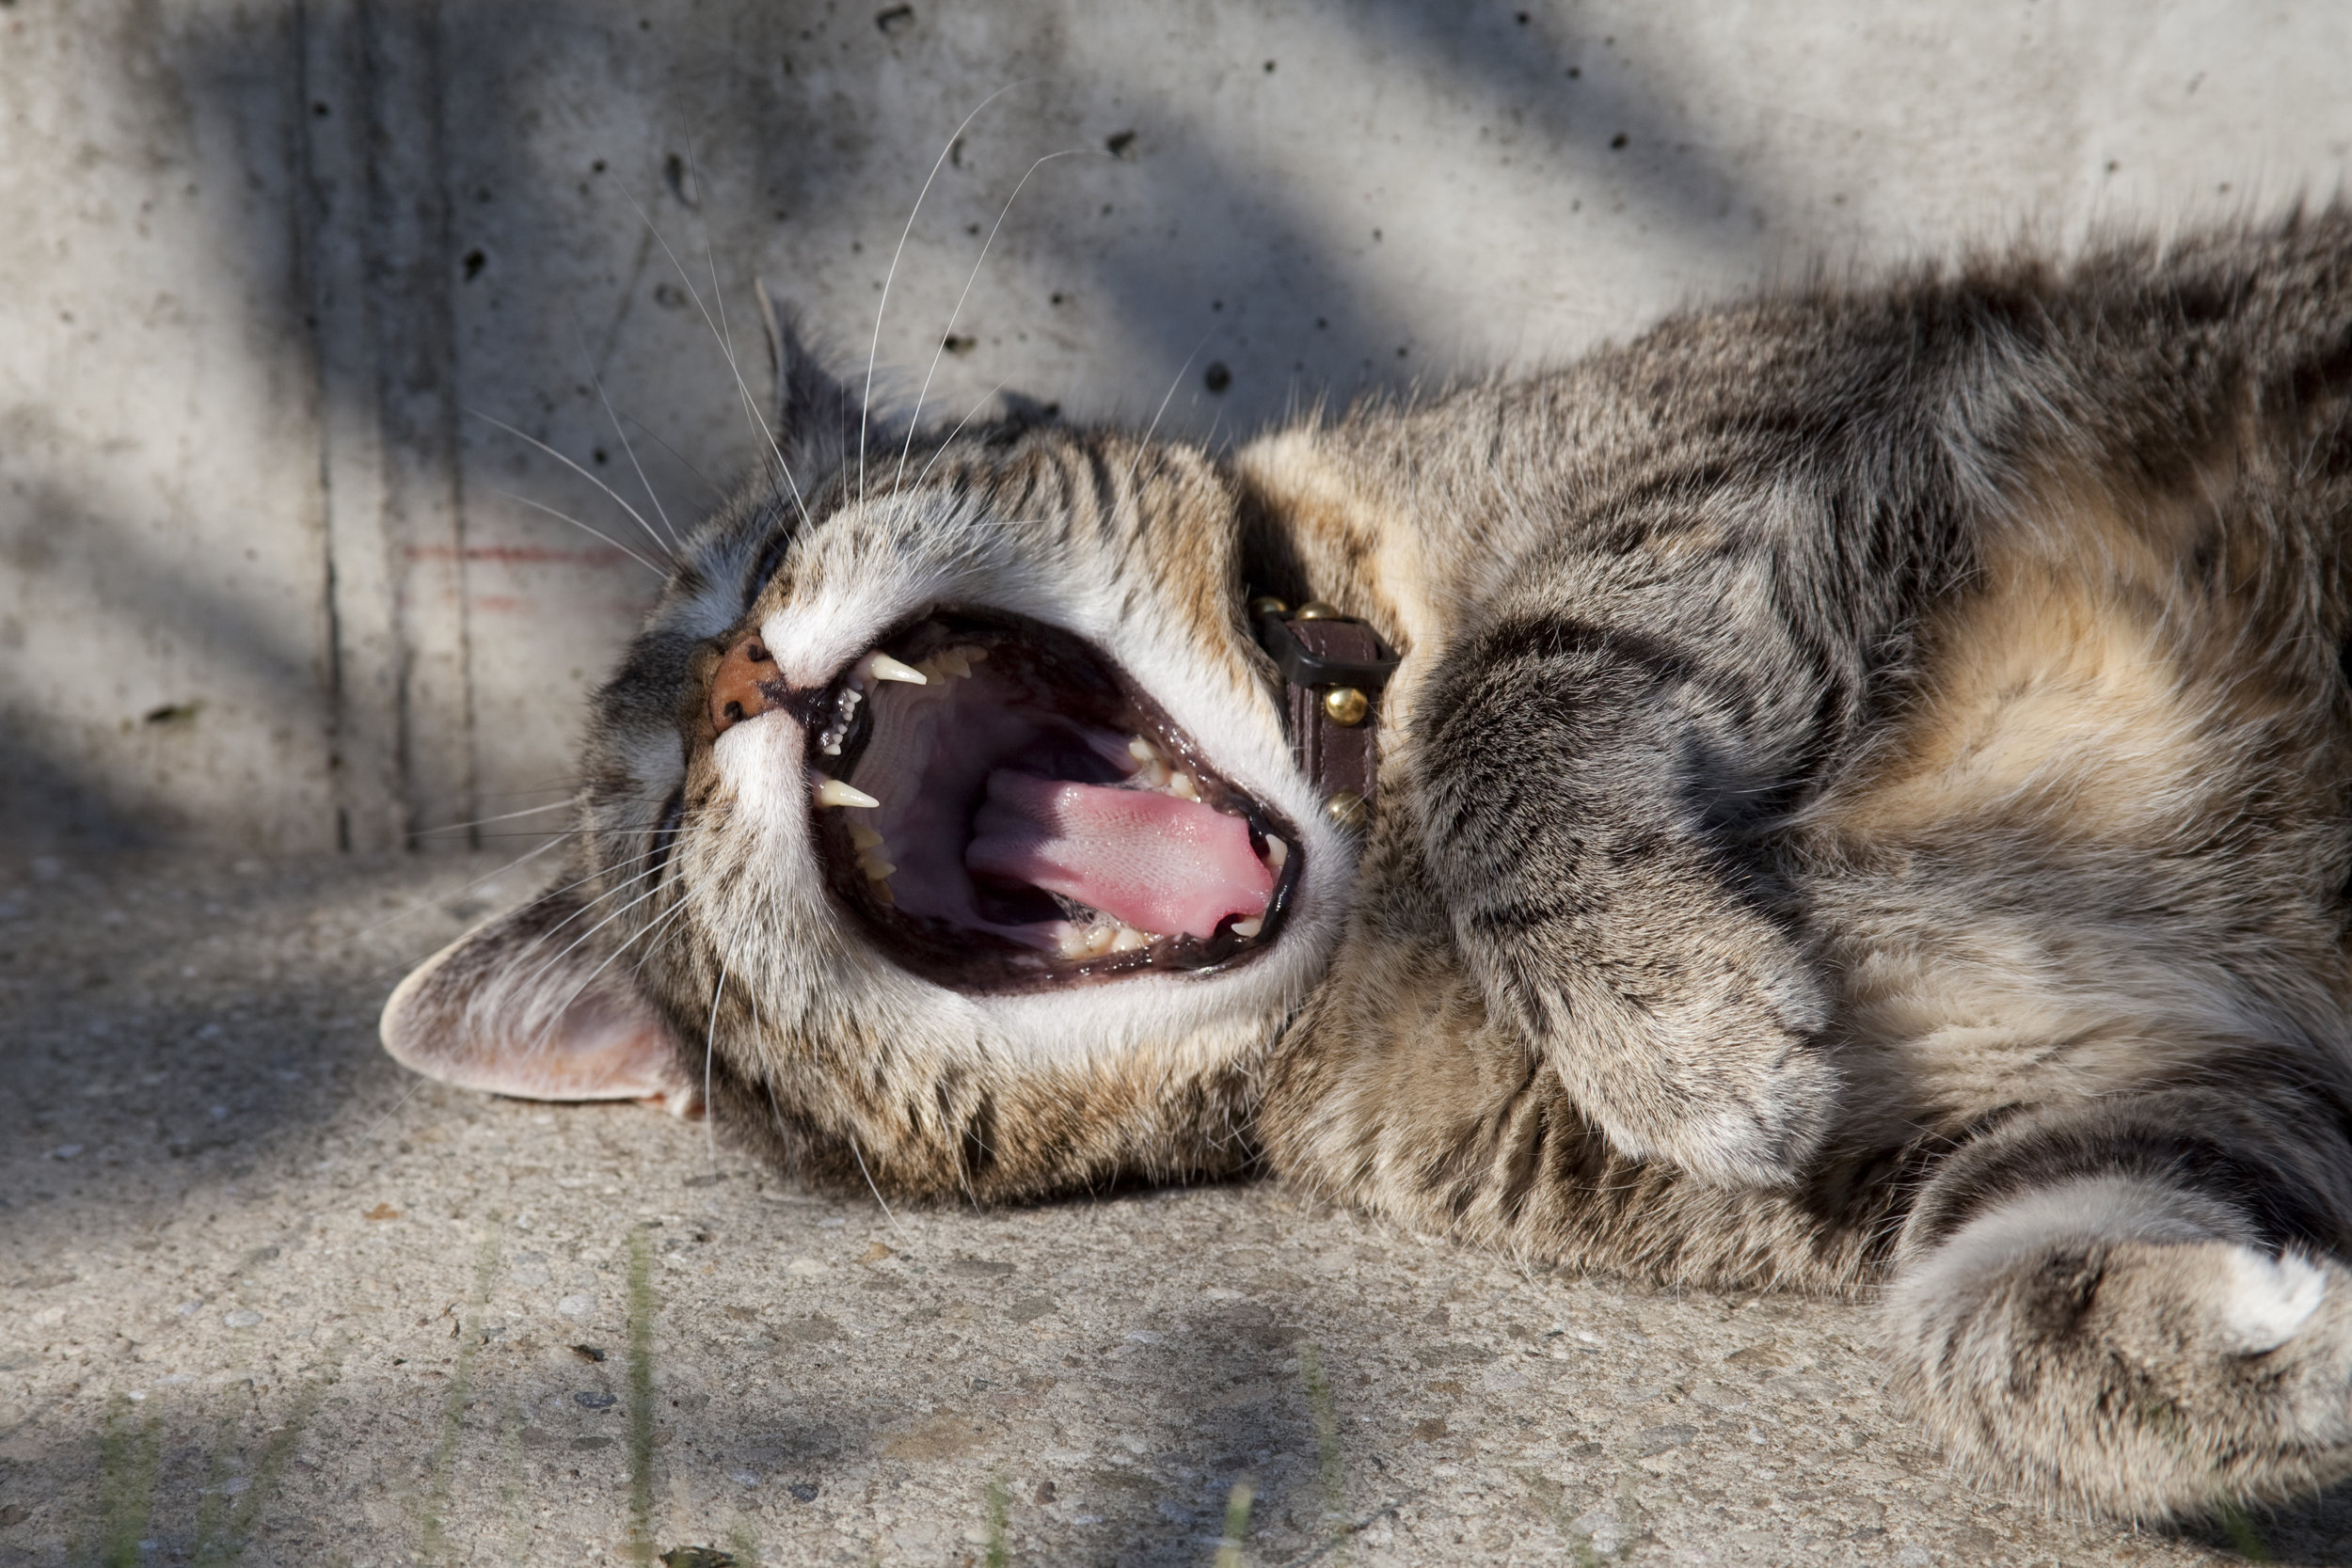 Close-up on a yawning tabby cat